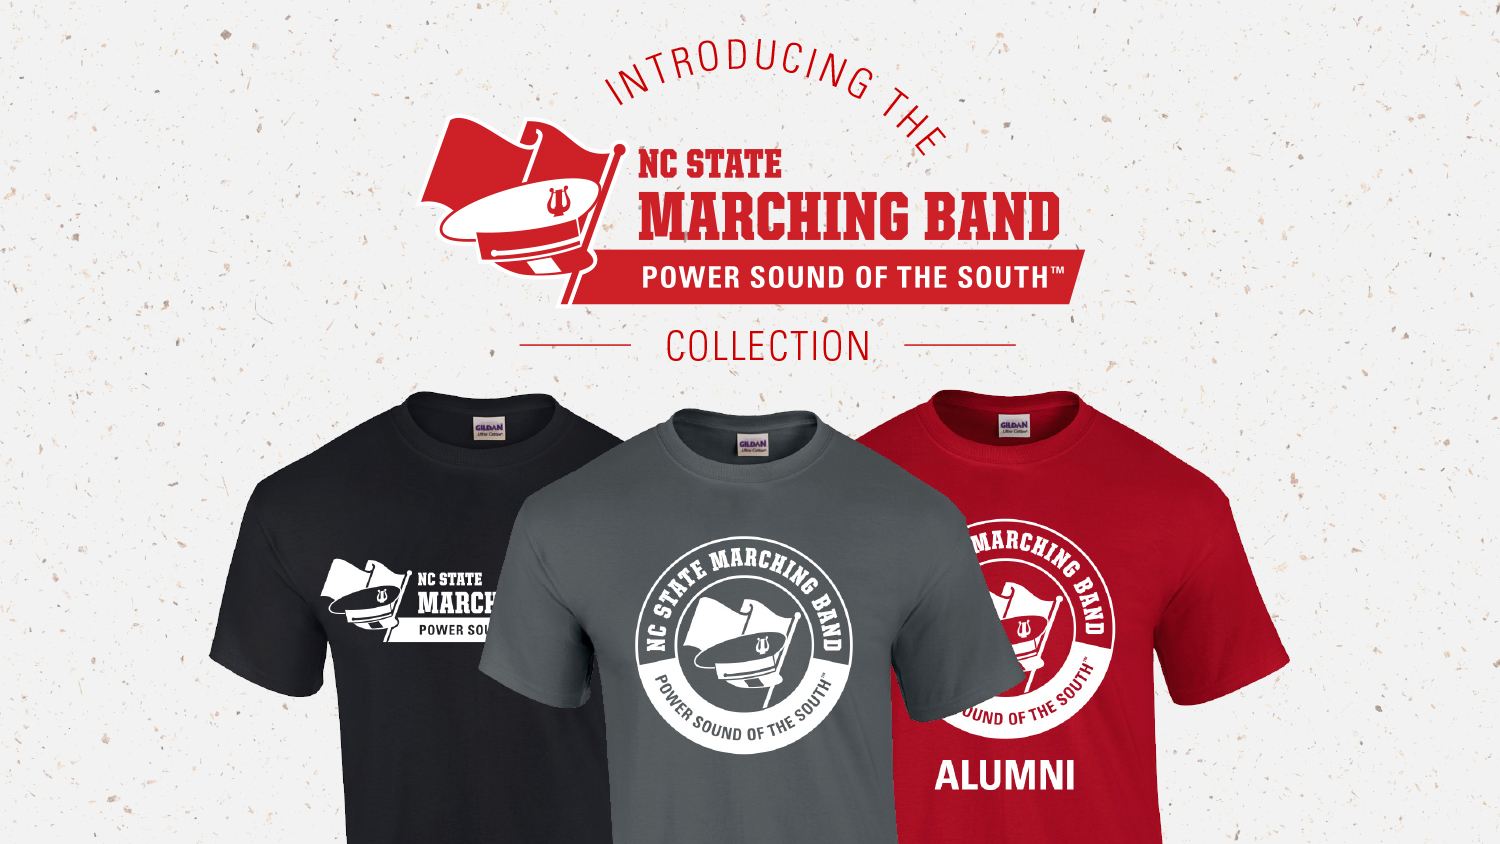 """Three T-shirts with """"NC State Marching Band - Power Sound of the South"""" written on them, along with a logo showing marching band hat and flag"""